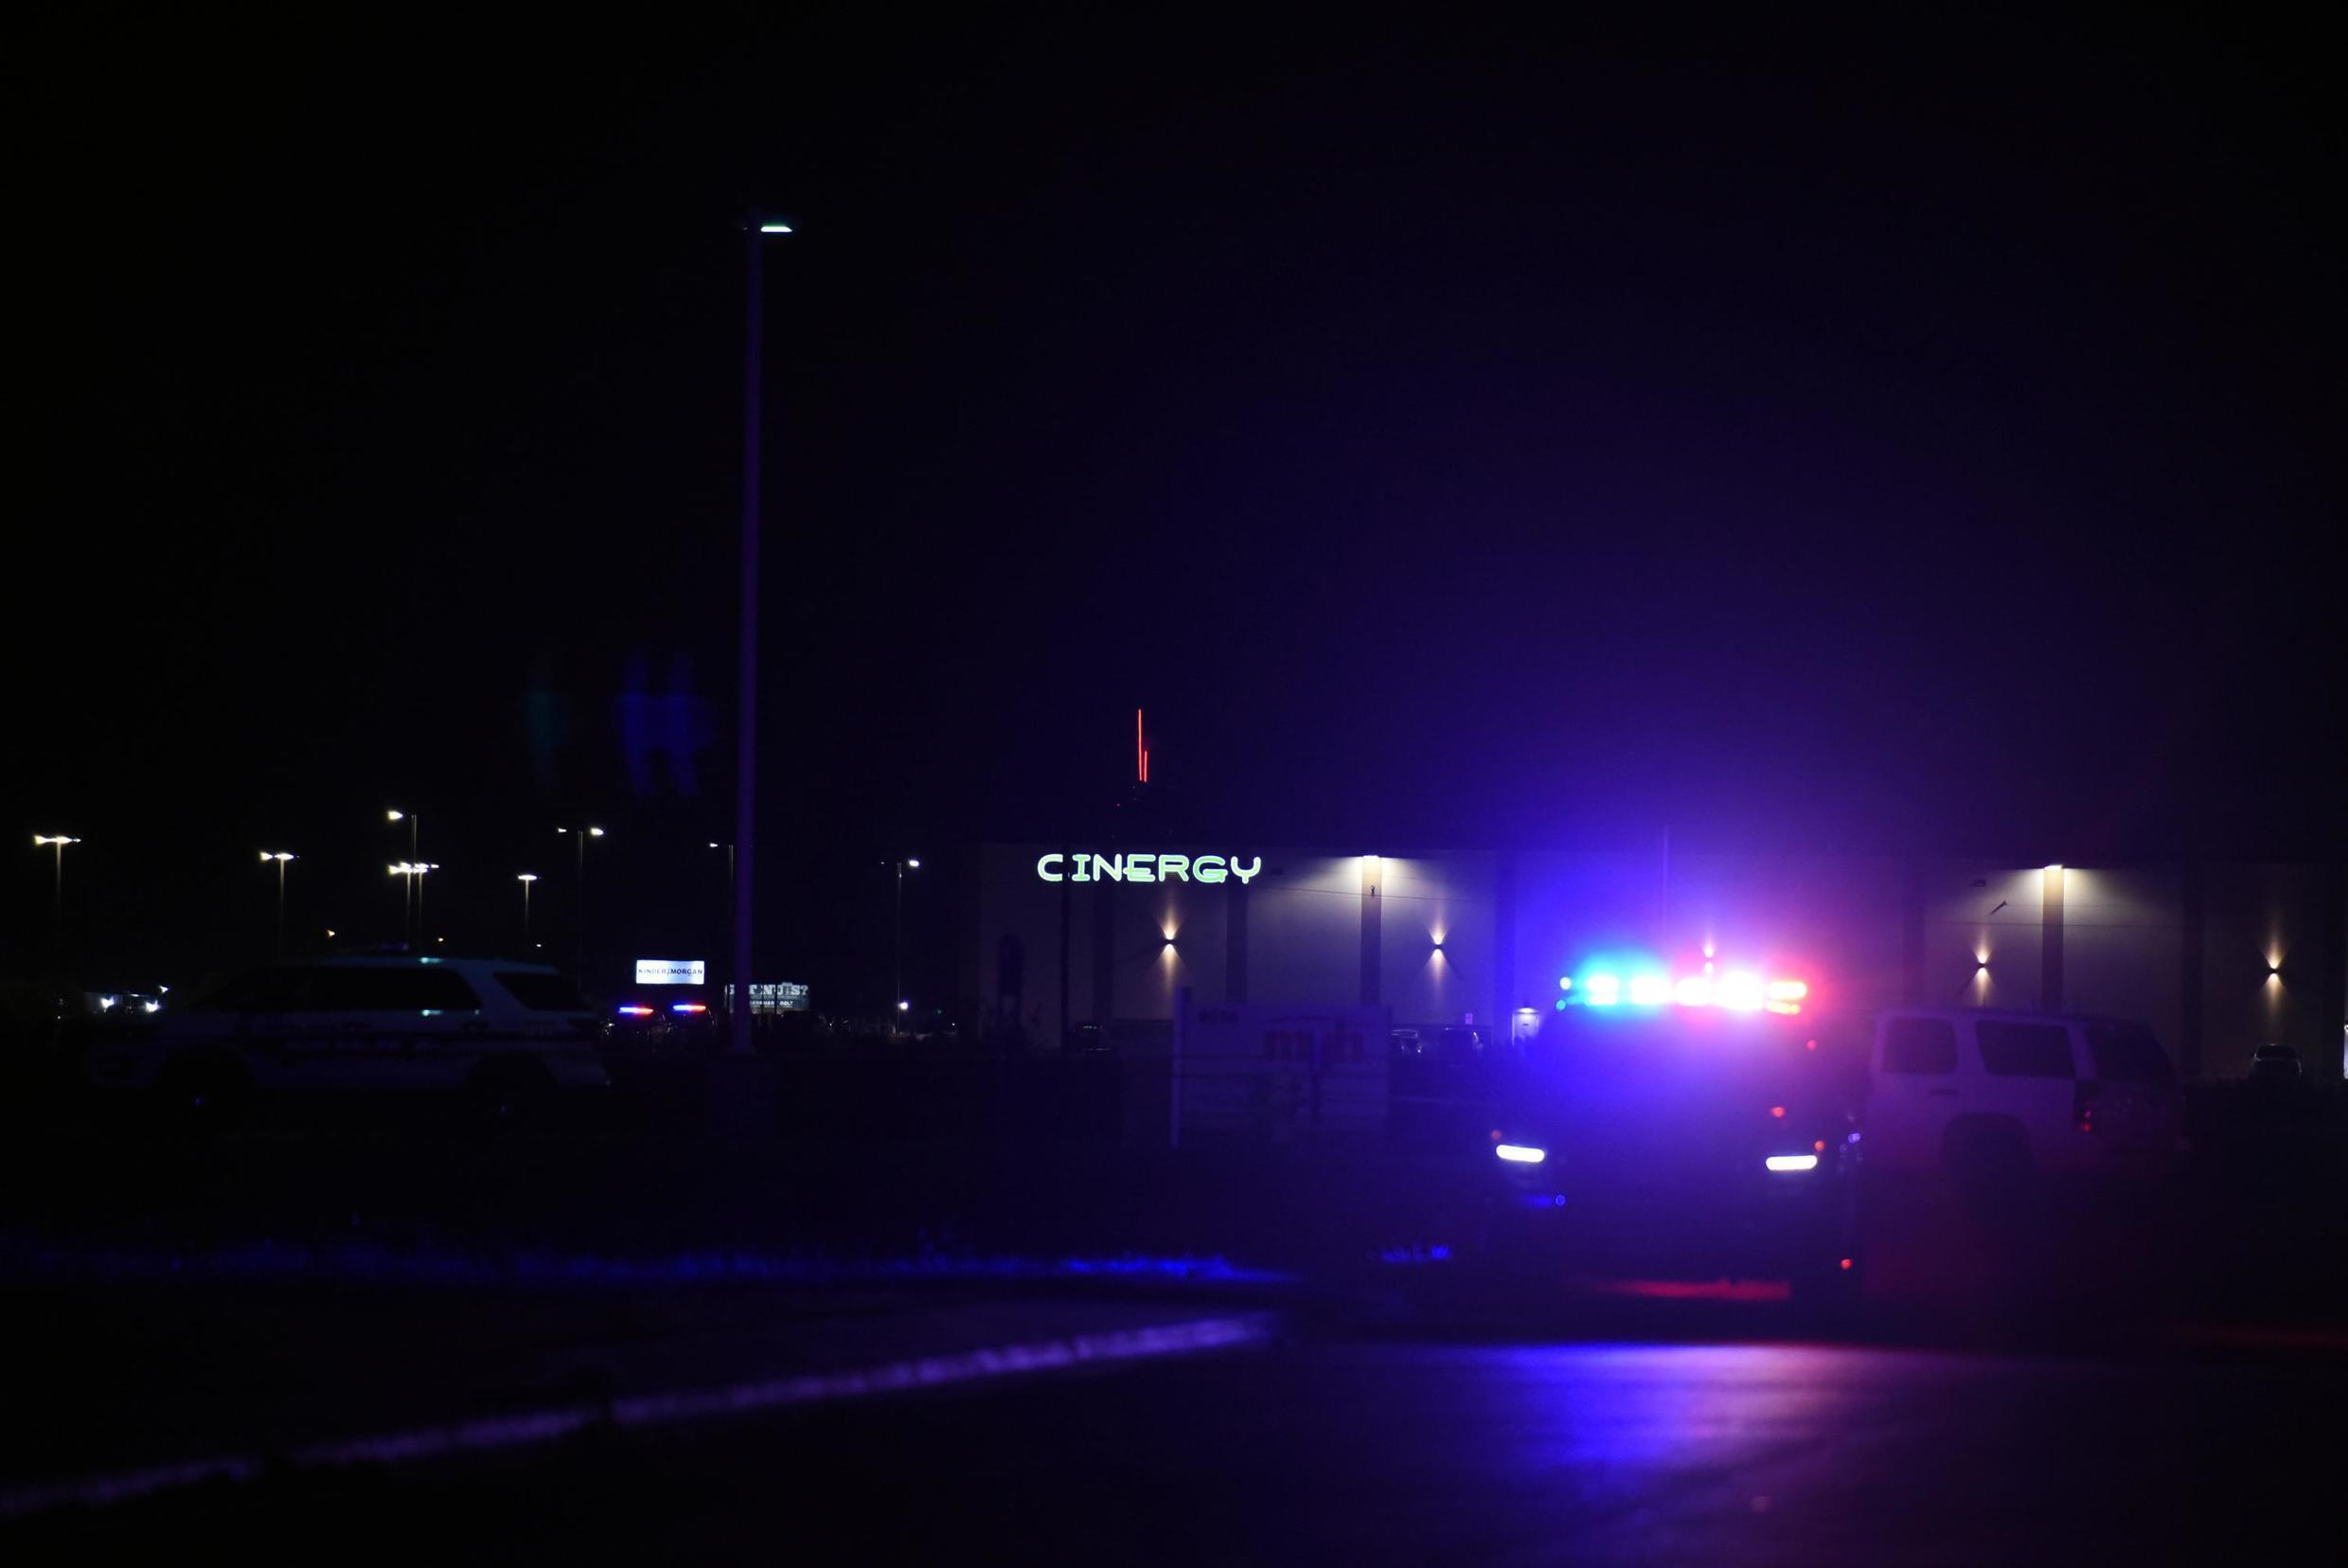 Police ended the gunamn's rampage in a shoot-out near a cinema in Odessa, Texas.